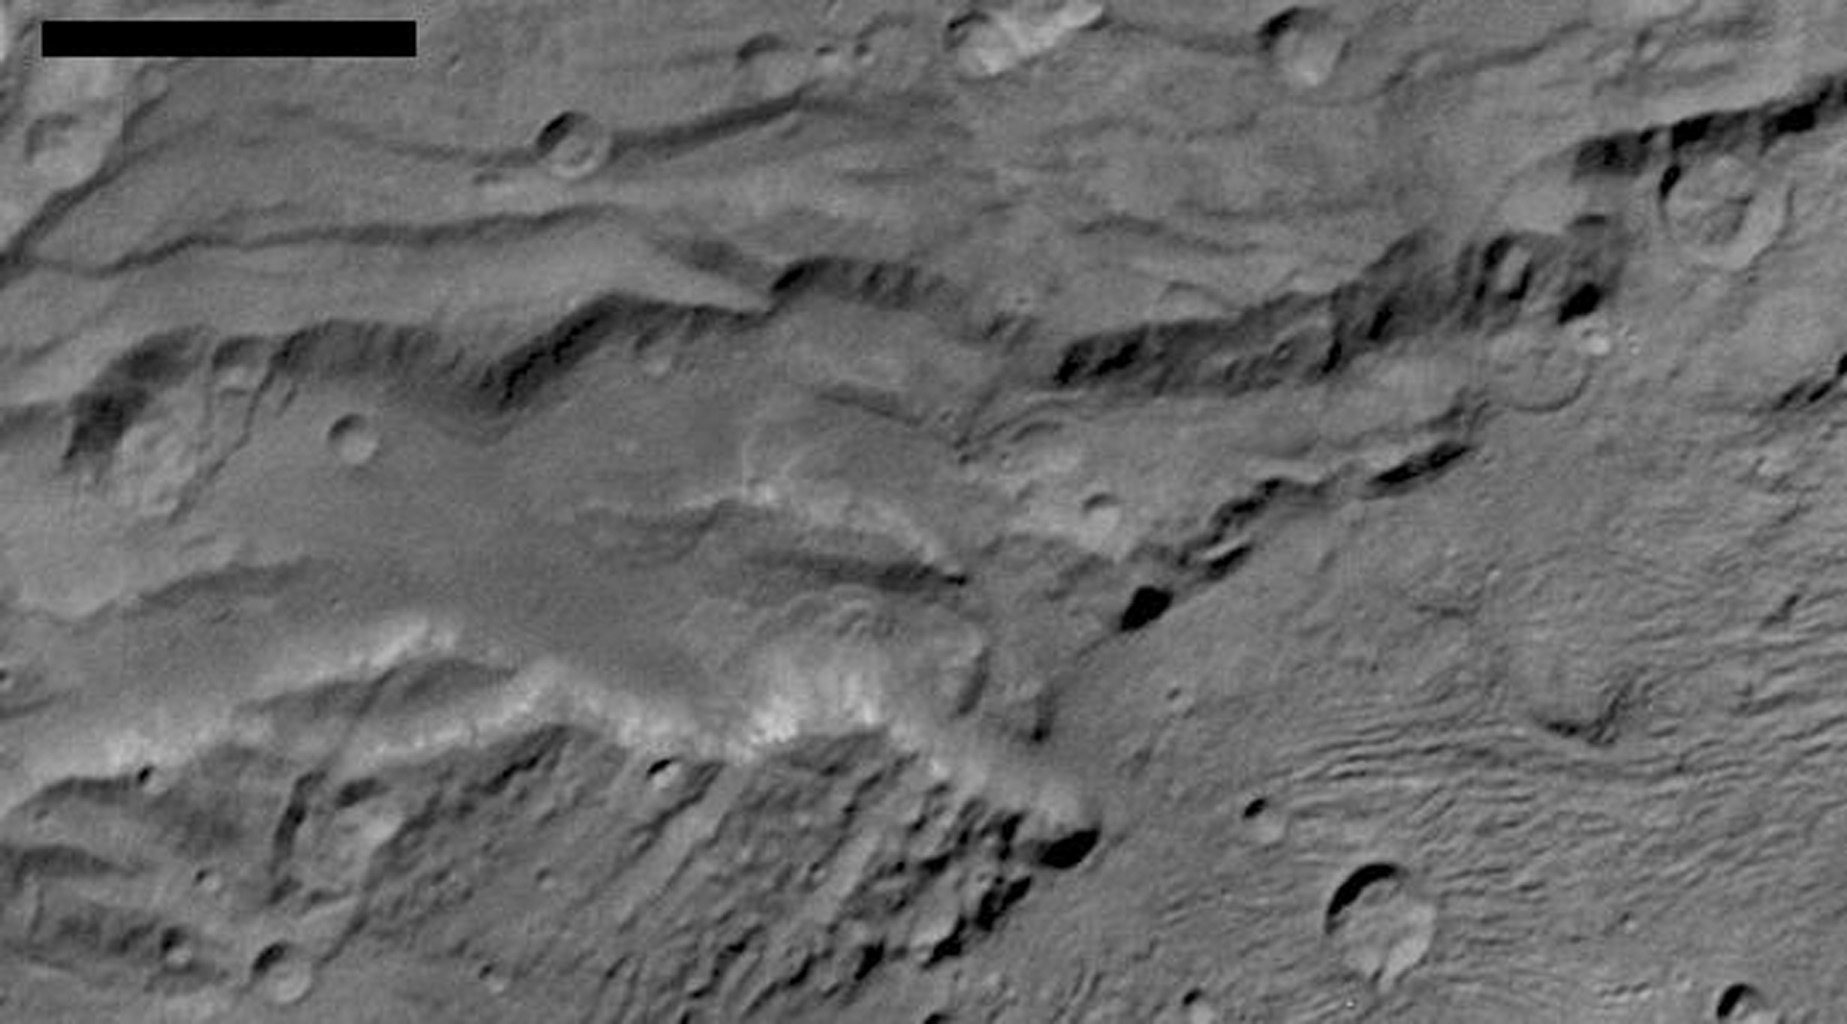 Scientists from NASA's New Horizons mission have spotted signs of long run-out landslides on Pluto's largest moon, Charon. This image is of Charon's informally named Serenity Chasma.